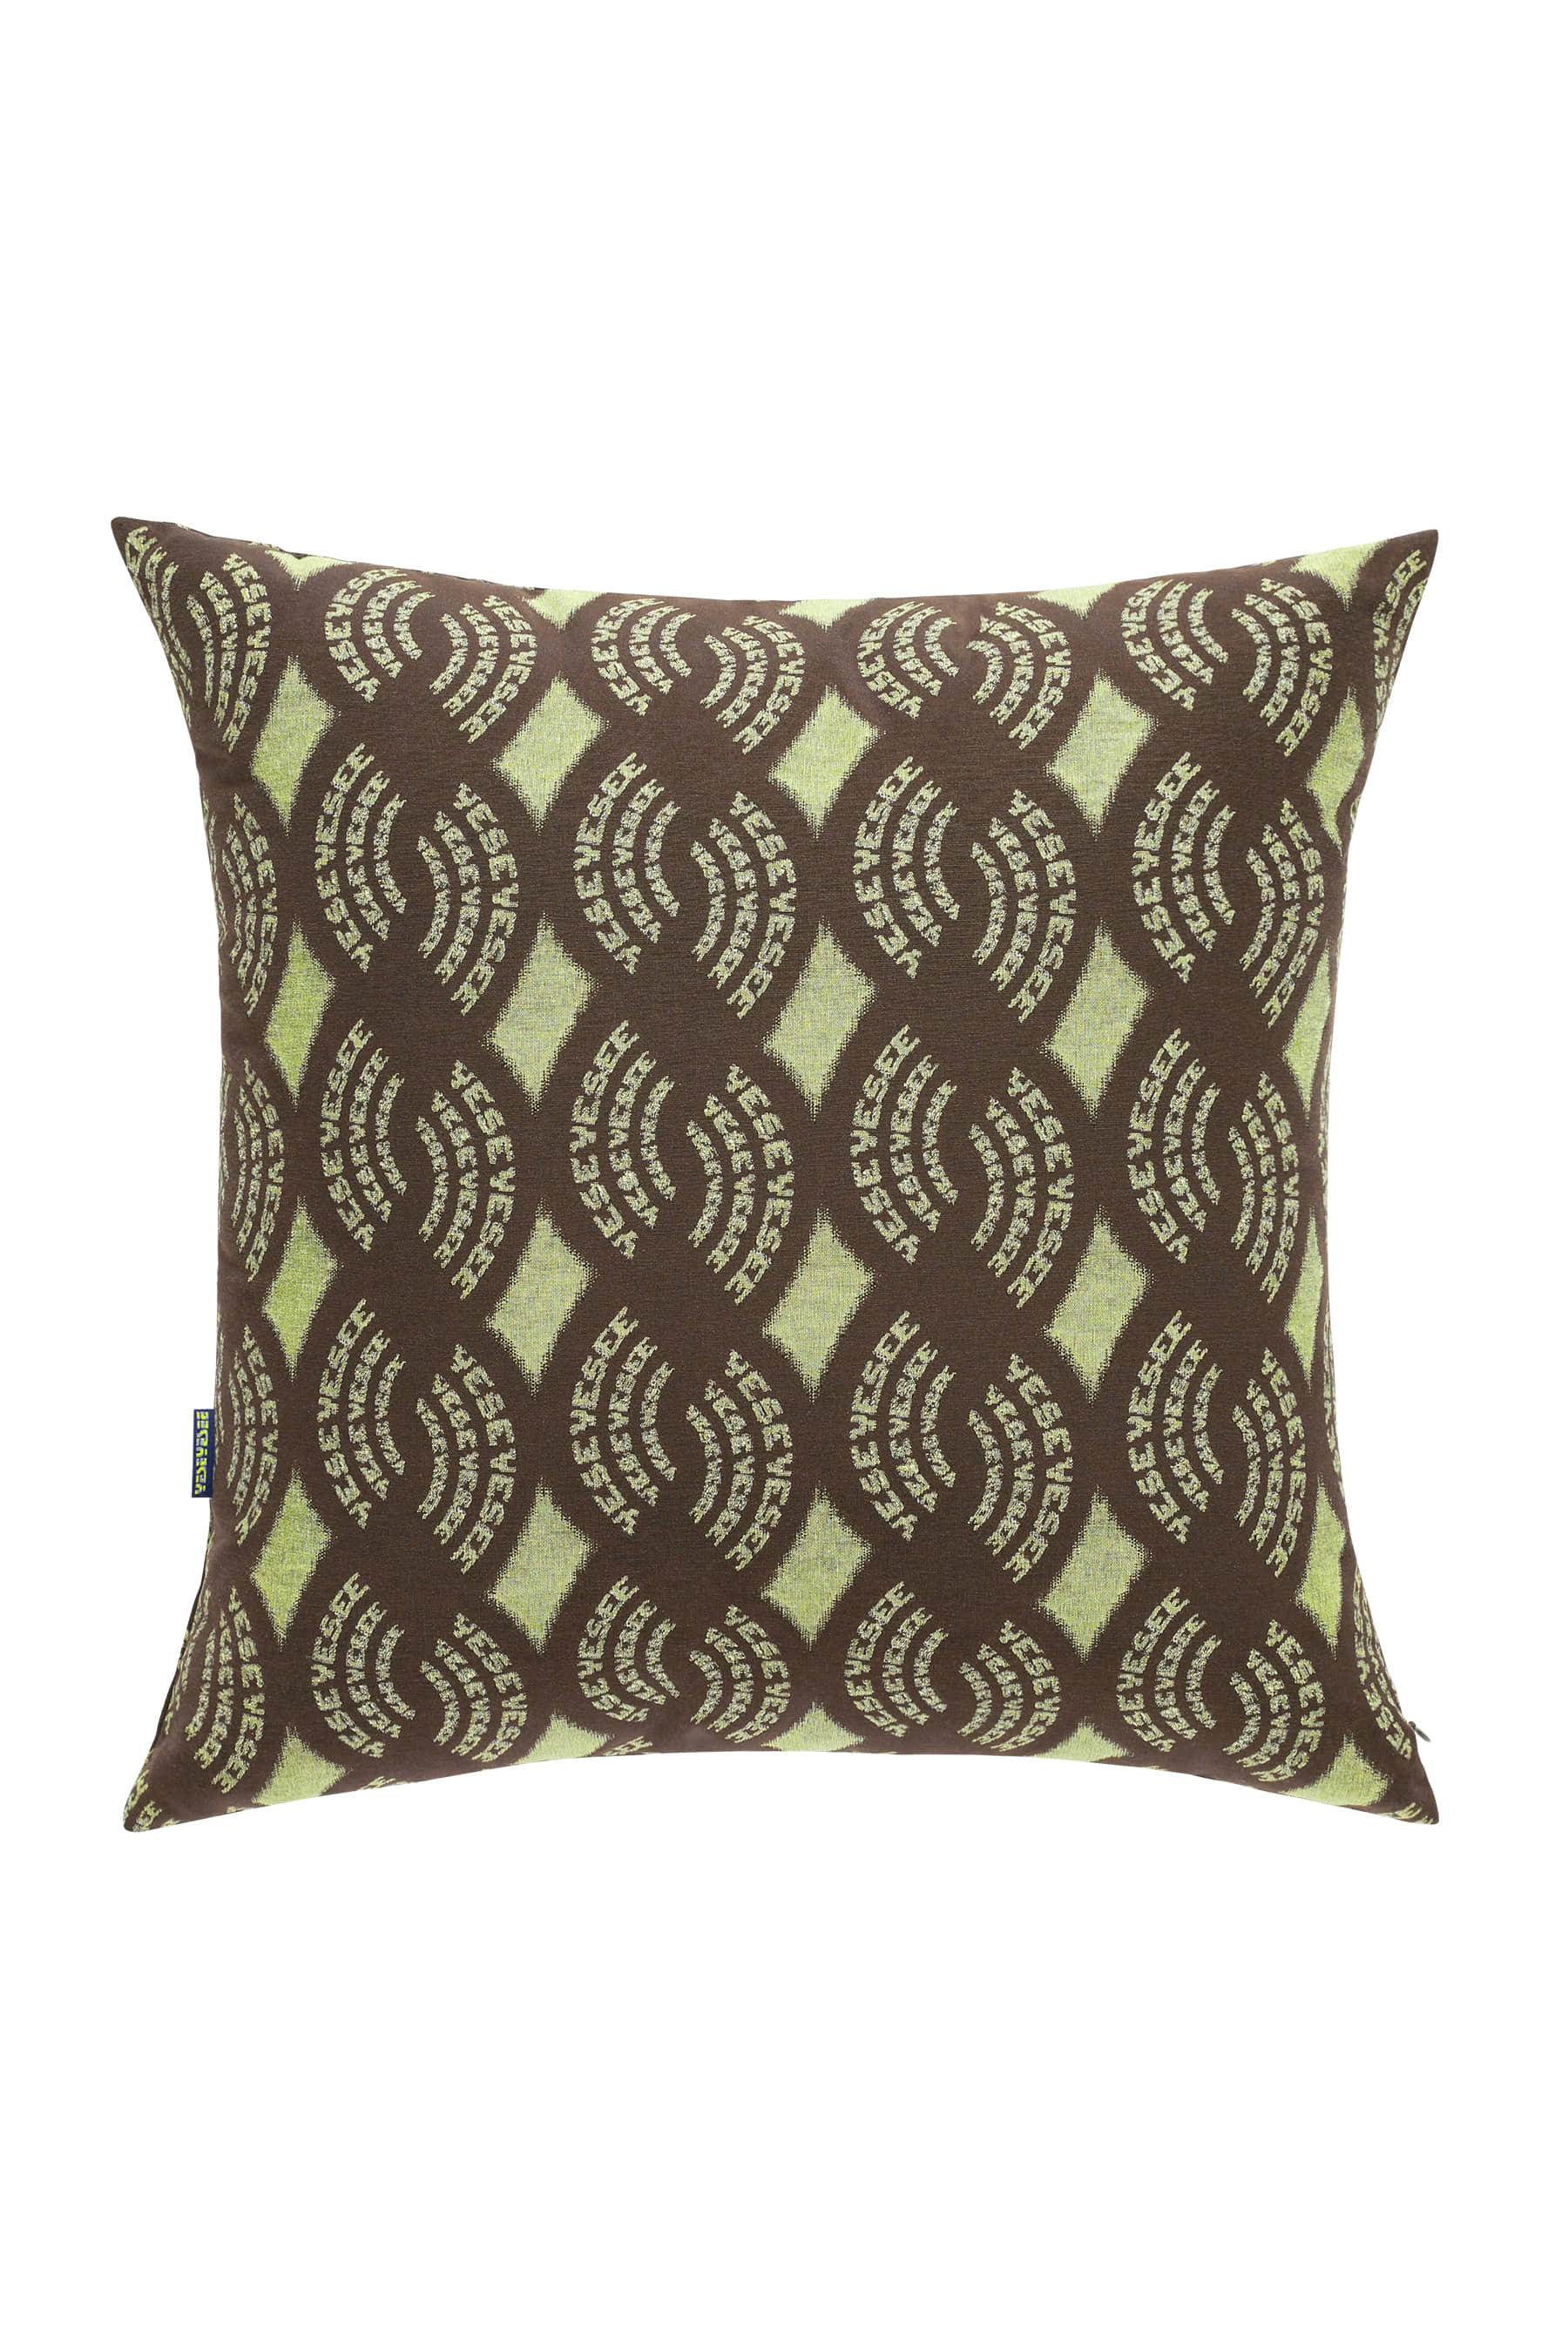 Y.E.S Jacquard Cushion Brown